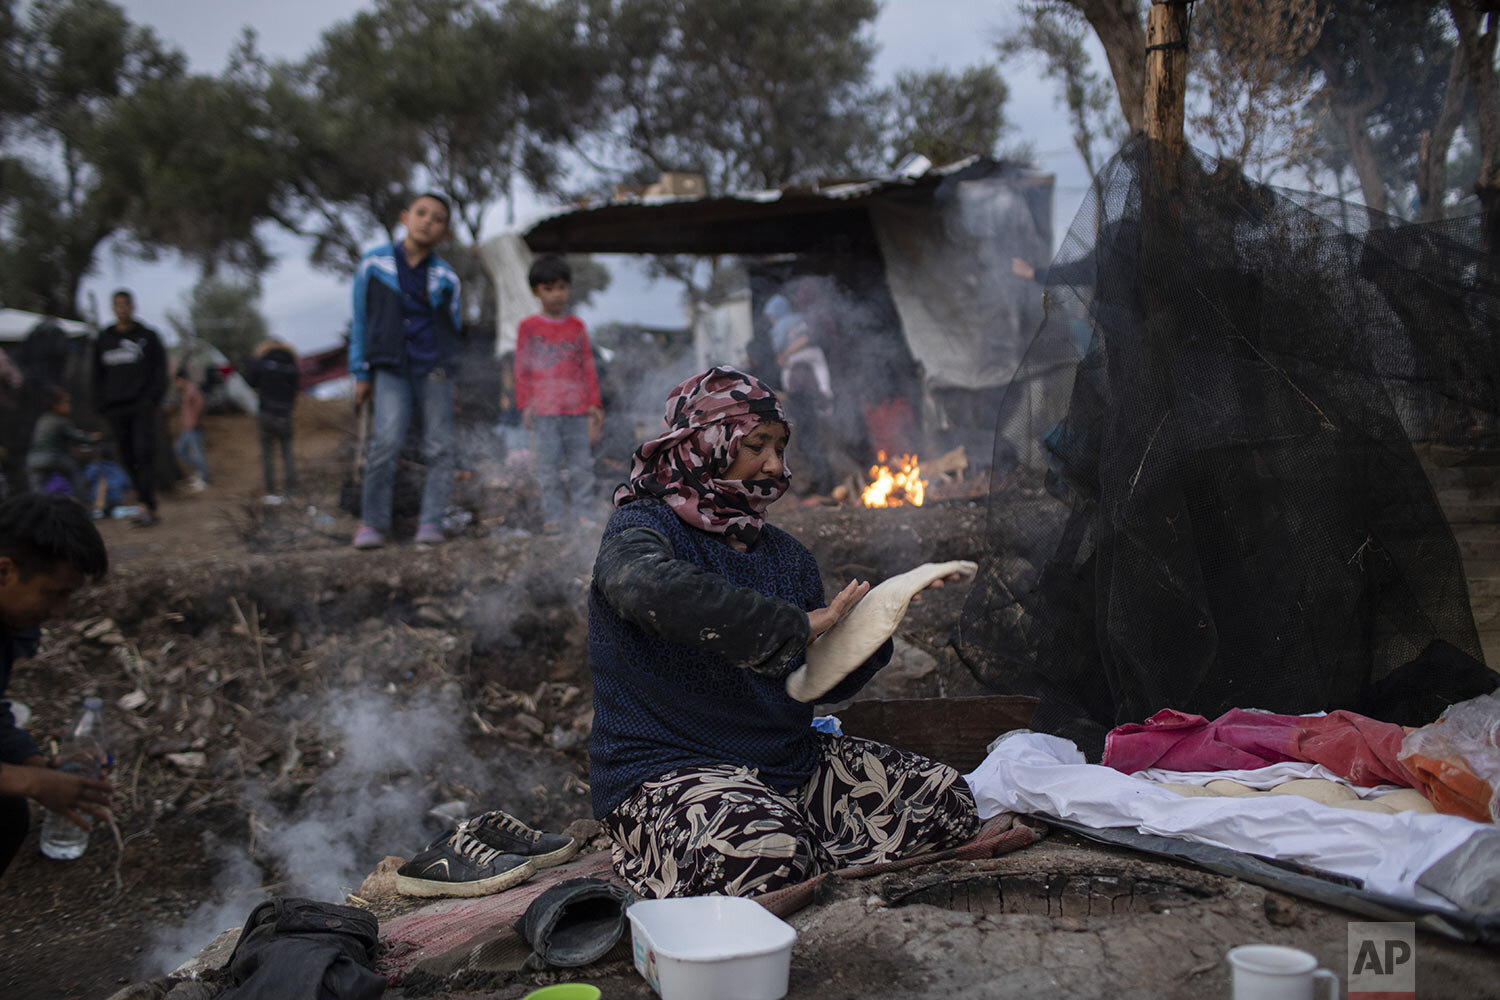 Pargoul Rahmani, 57, makes bread at a makeshift bakery in the overcrowded Moria refugee and migrant camp, Lesbos island, Greece, Tuesday, Oct. 8, 2019. (AP Photo/Petros Giannakouris)